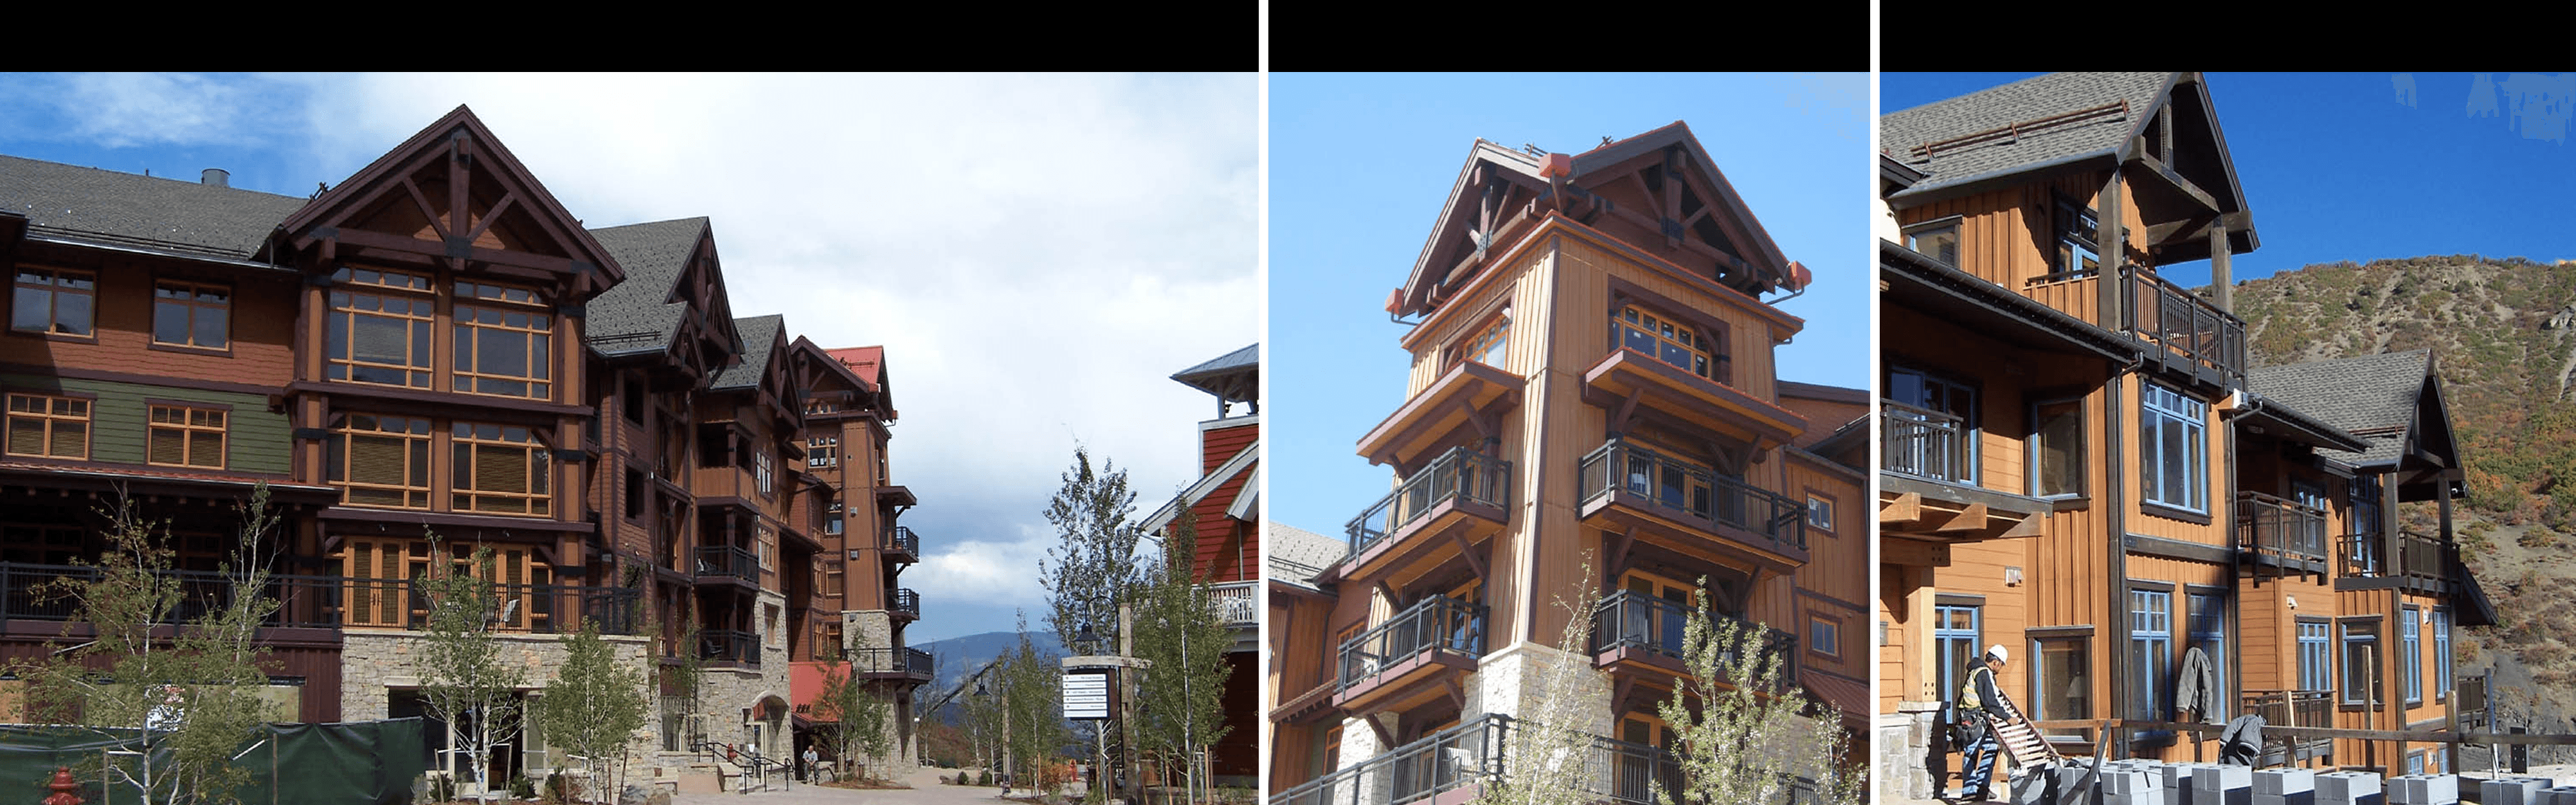 Stowe Mountain Lodge architecture solution provided from an architecture firm located in Colorado